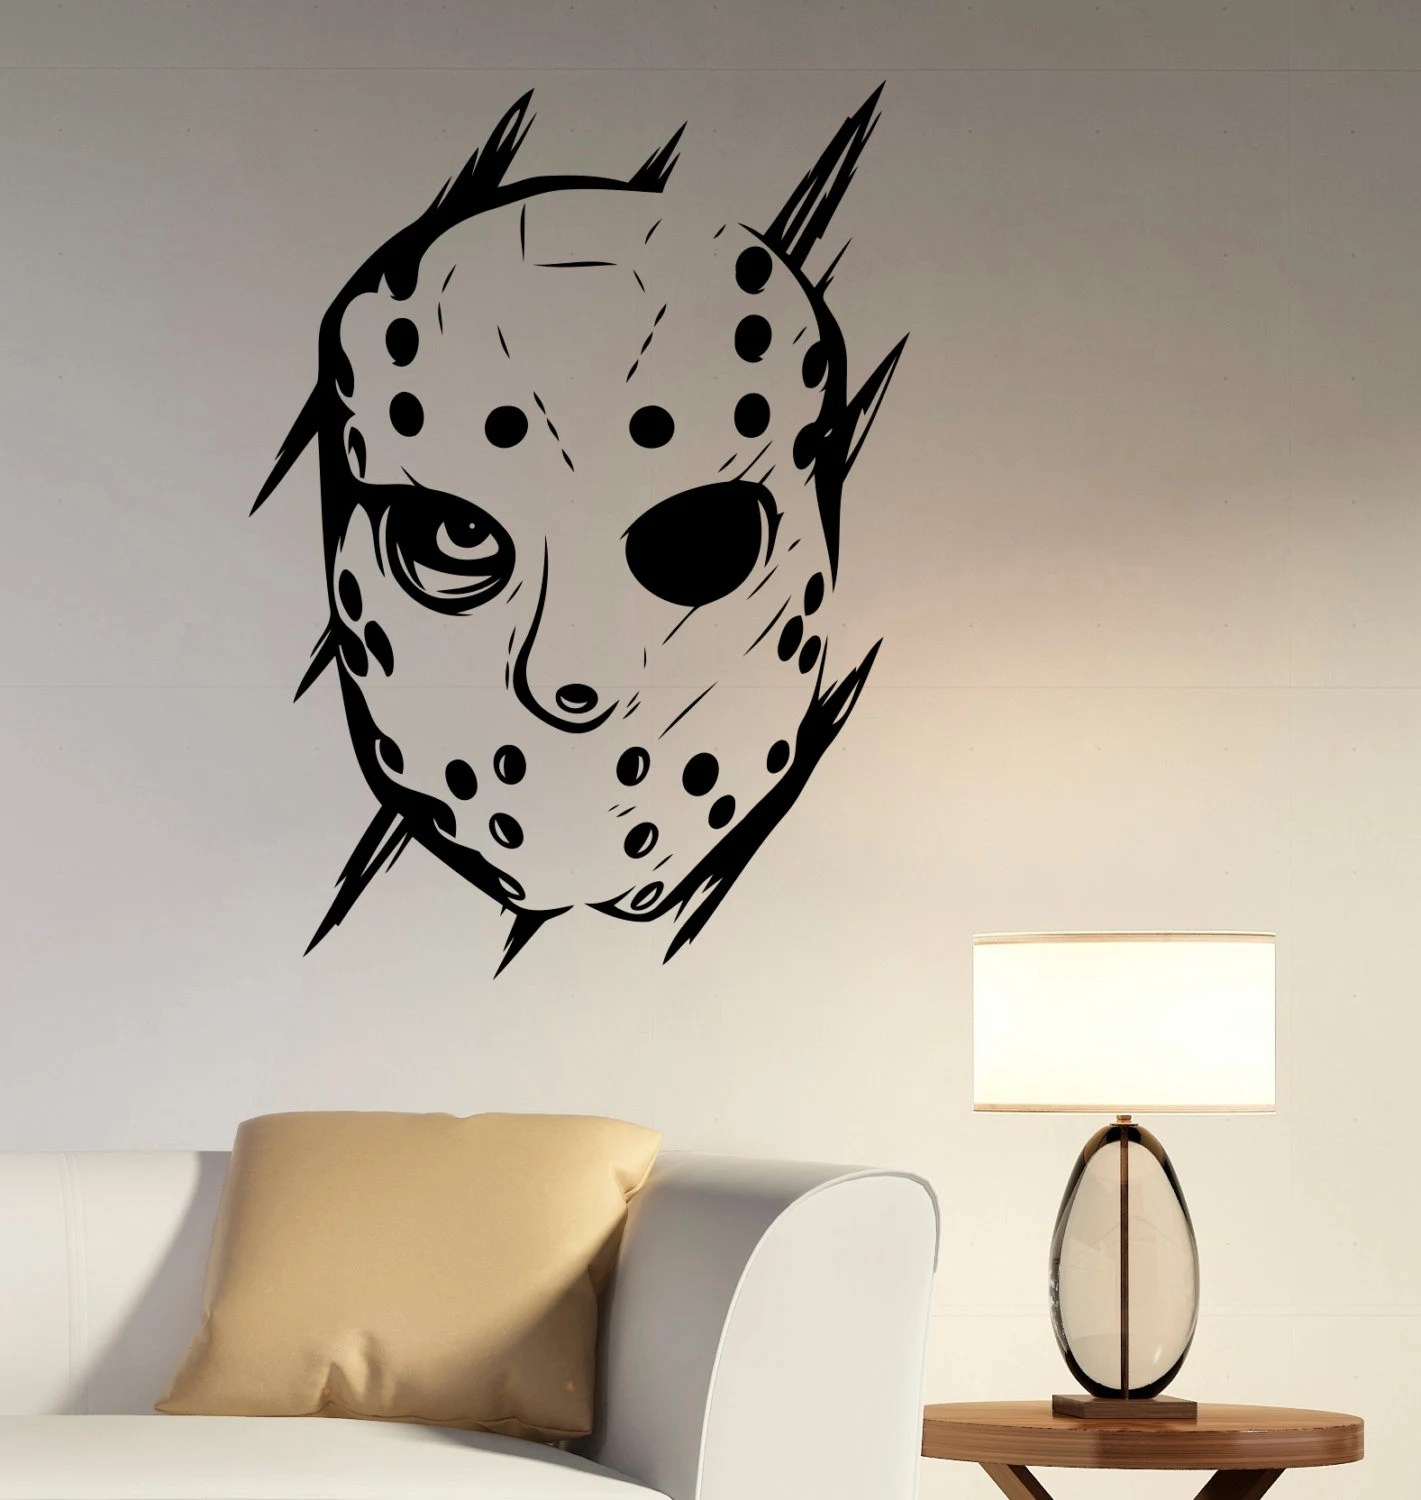 Horror Woonkamer Jason Voorhees Muur Sticker Vinyl Sticker Friday The 13th Film Art Decoratie Voor Home Housewares Woonkamer Slaapkamer Horror Decor Jvh1